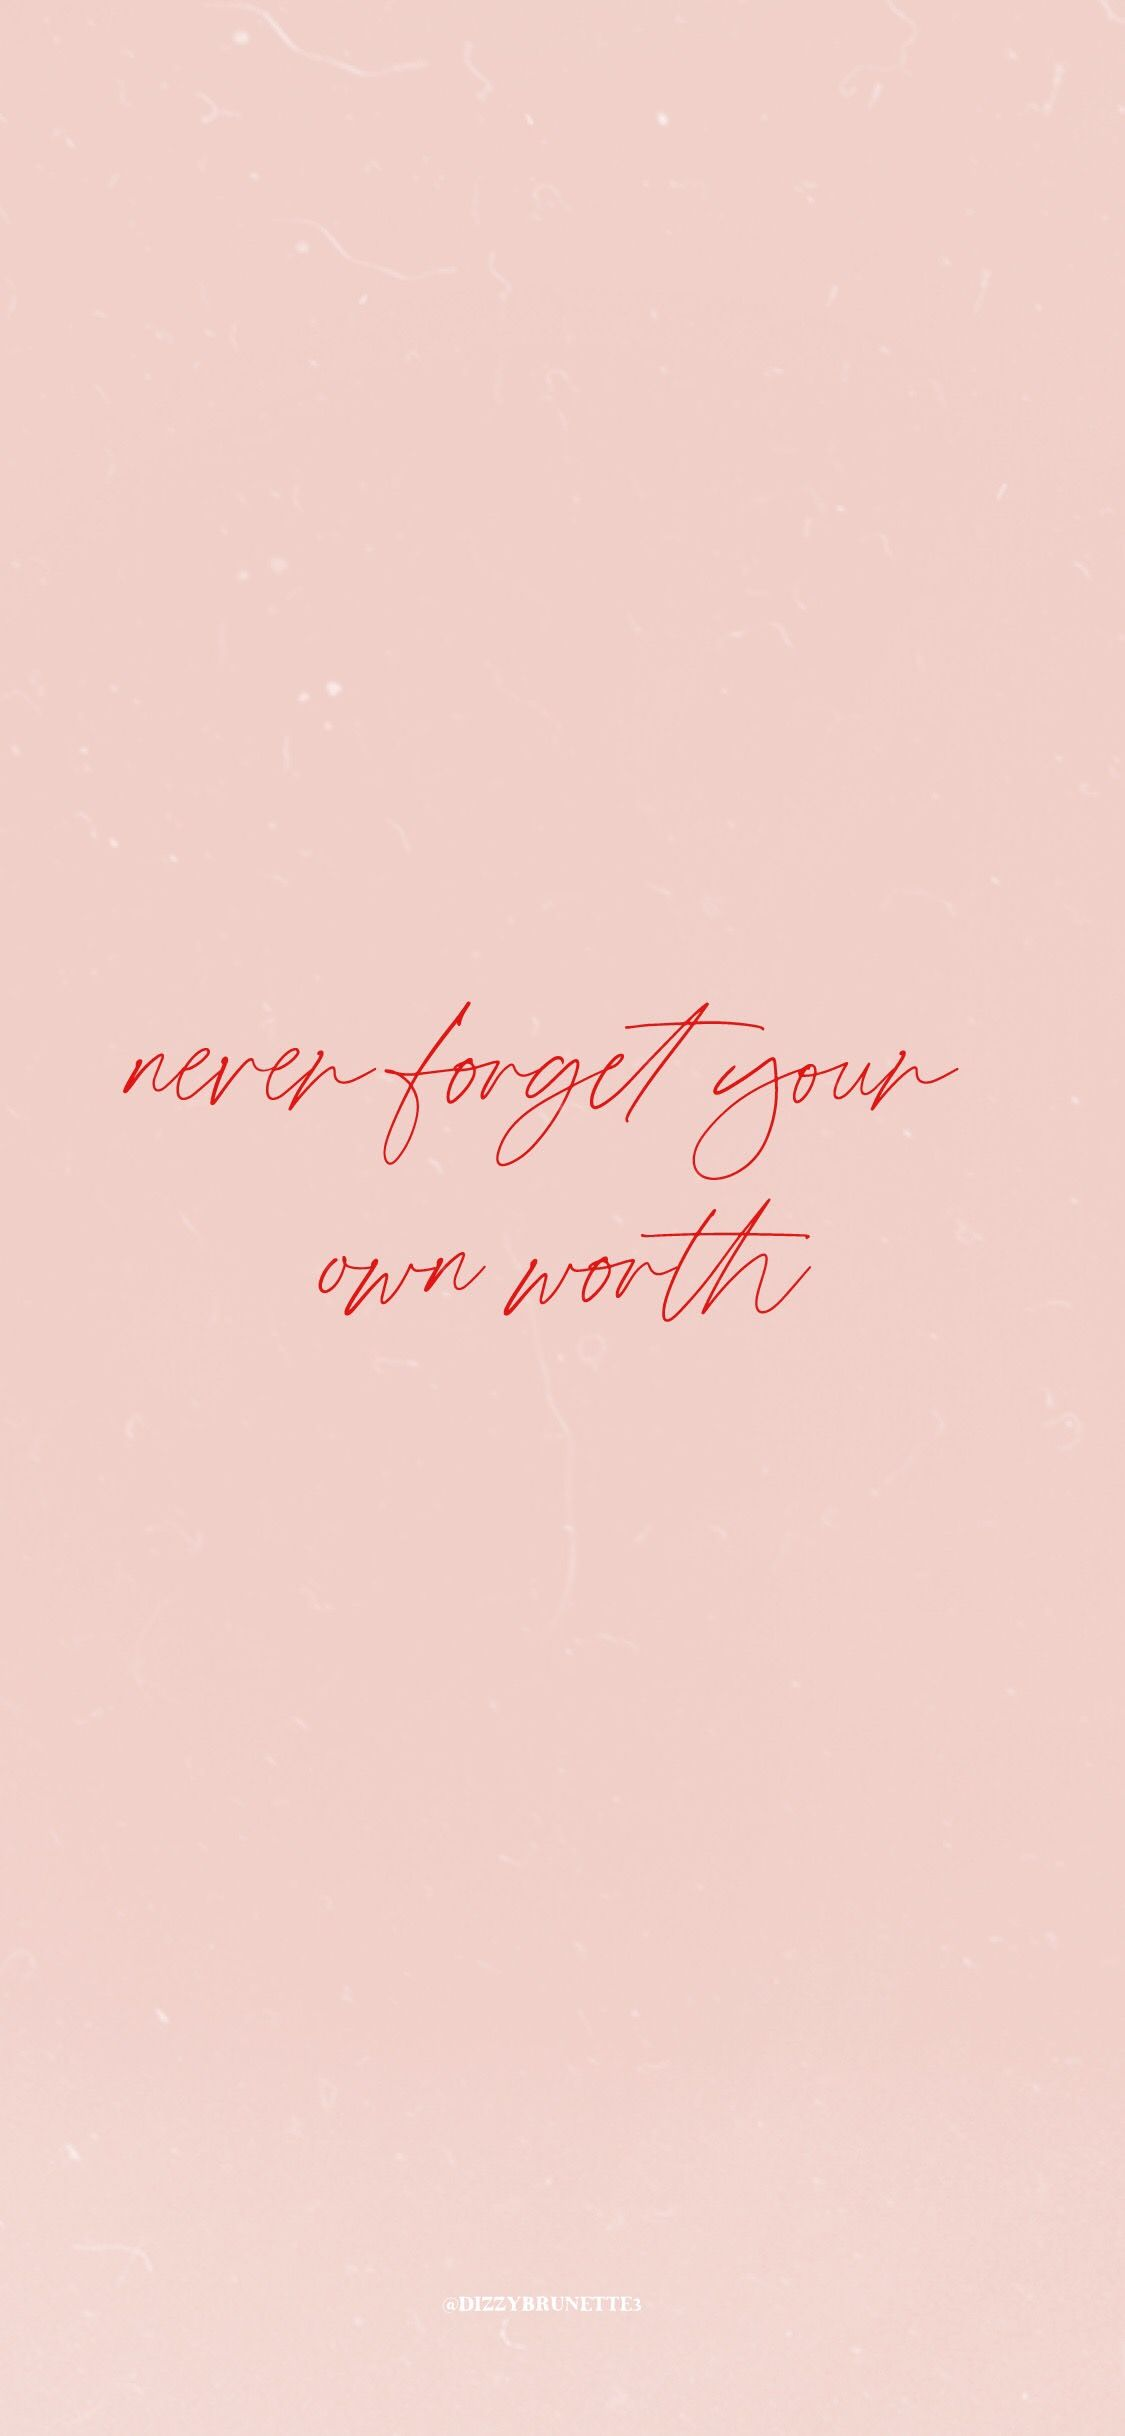 Pink Wallpaper Iphone Wallpaper Phone Wallpaper Free Pink Wallpaper Free Iphone Wallpaper Motivation Boss Quotes Phone Backgrounds Quotes Girl Boss Quotes